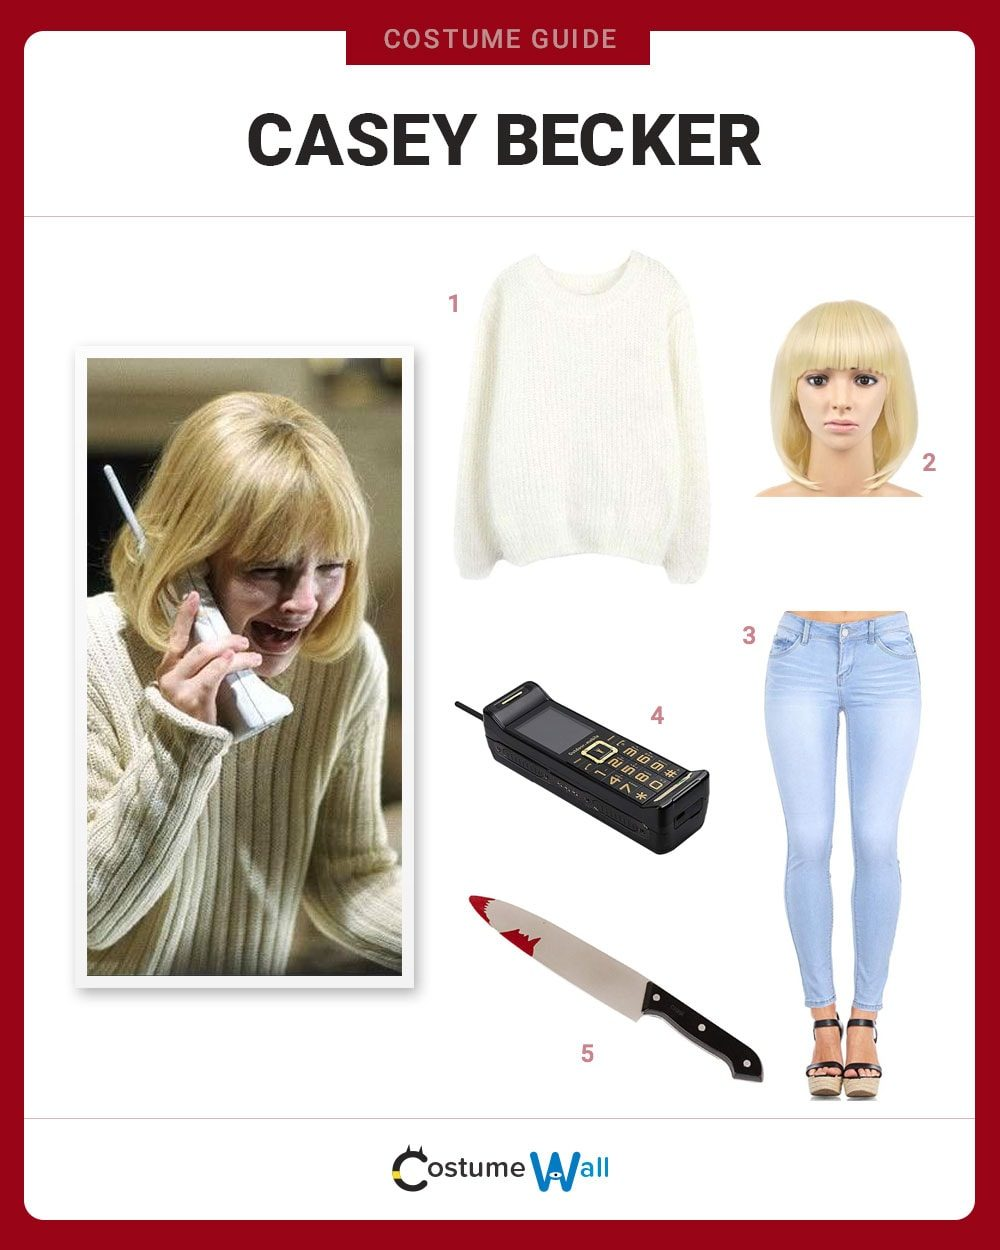 Casey Becker Costume Guide